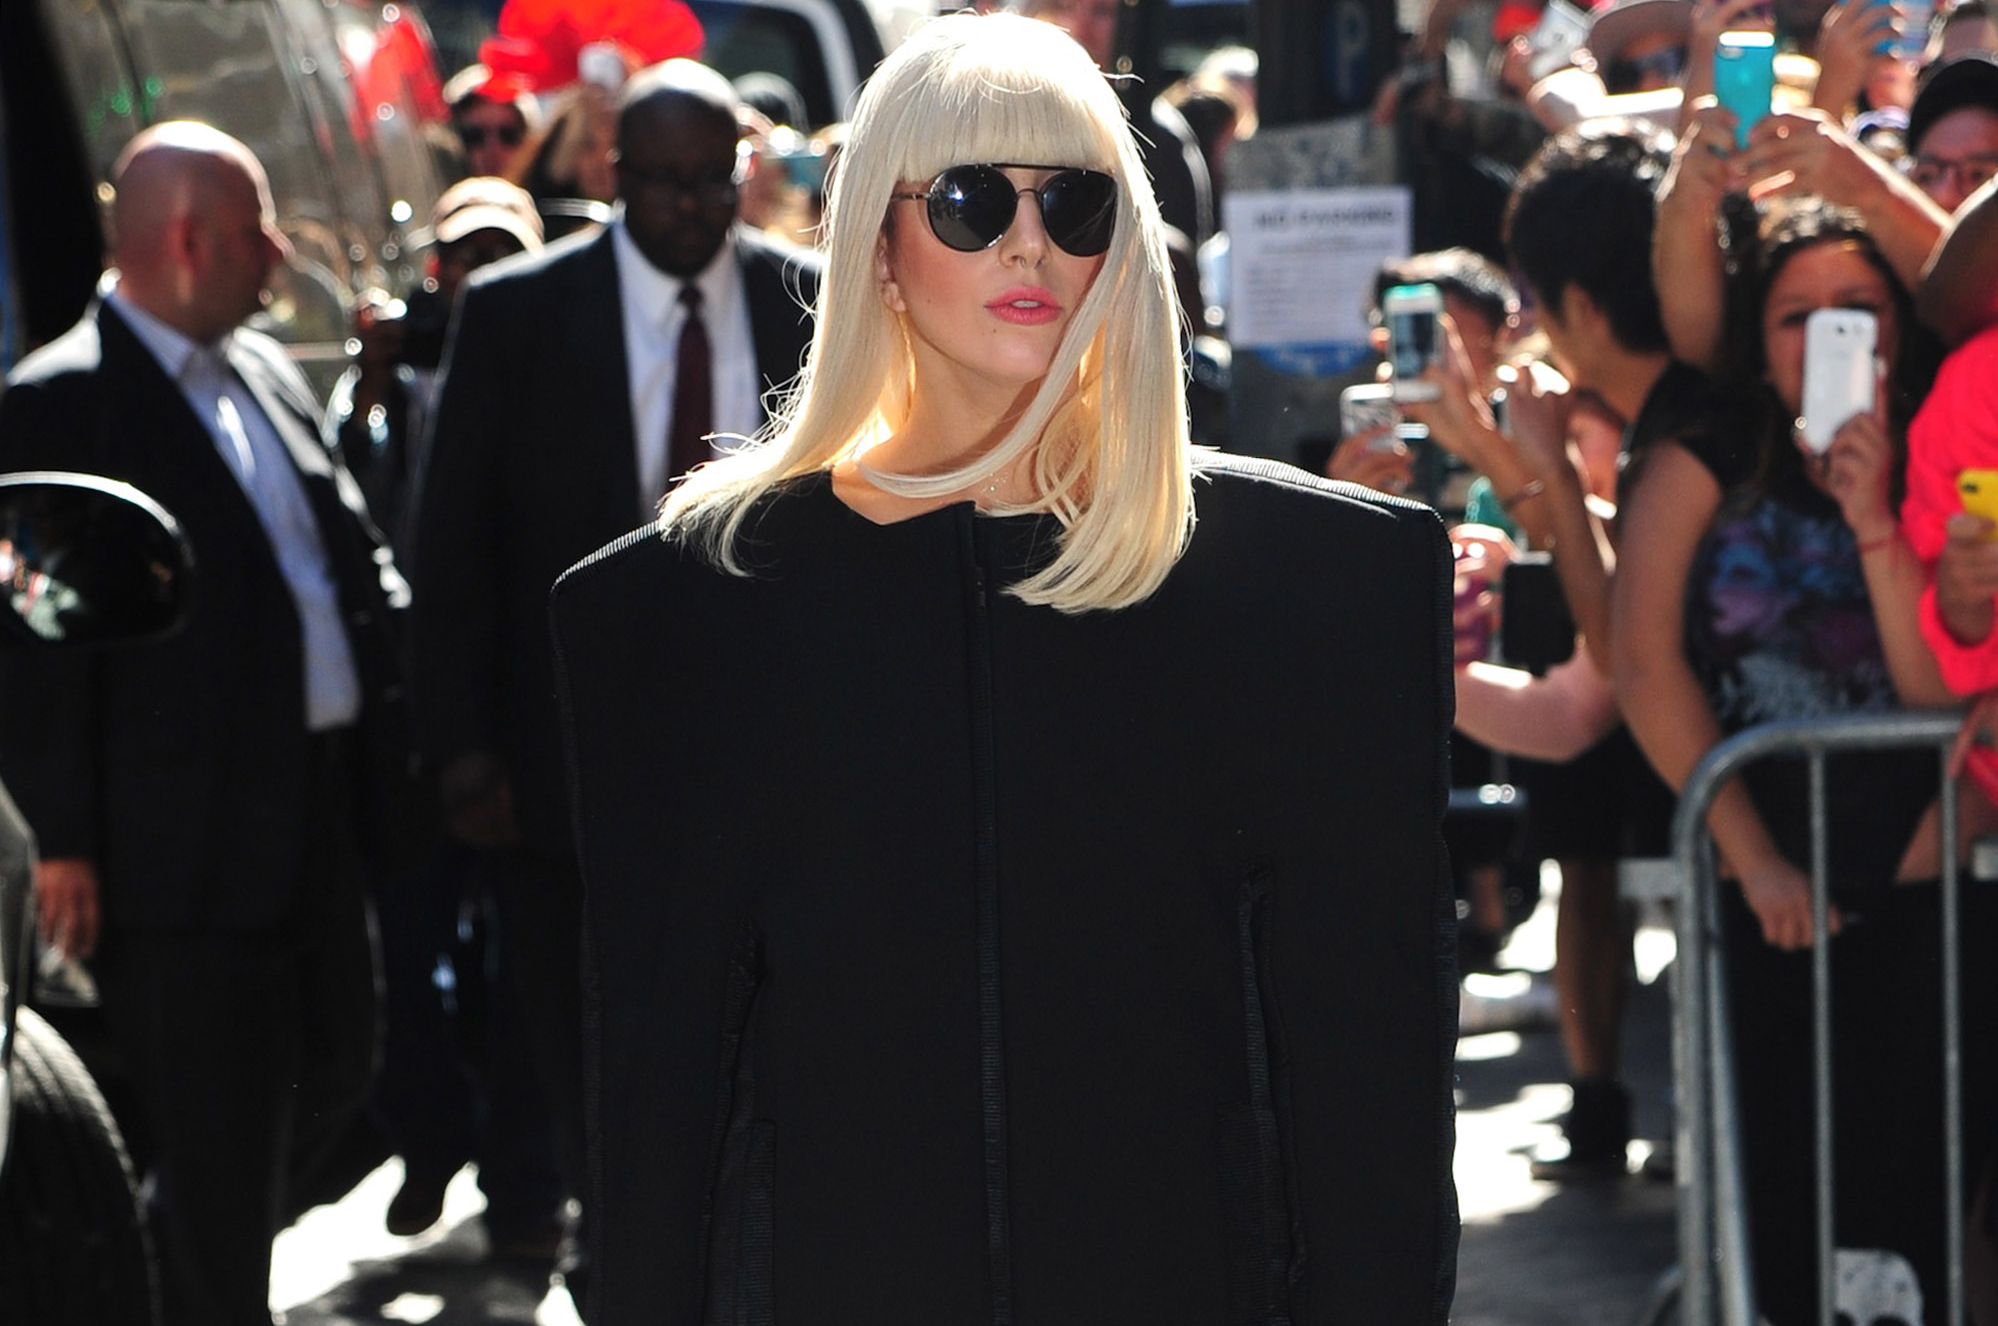 Lady Gaga in New York last month. (FilmMagic)